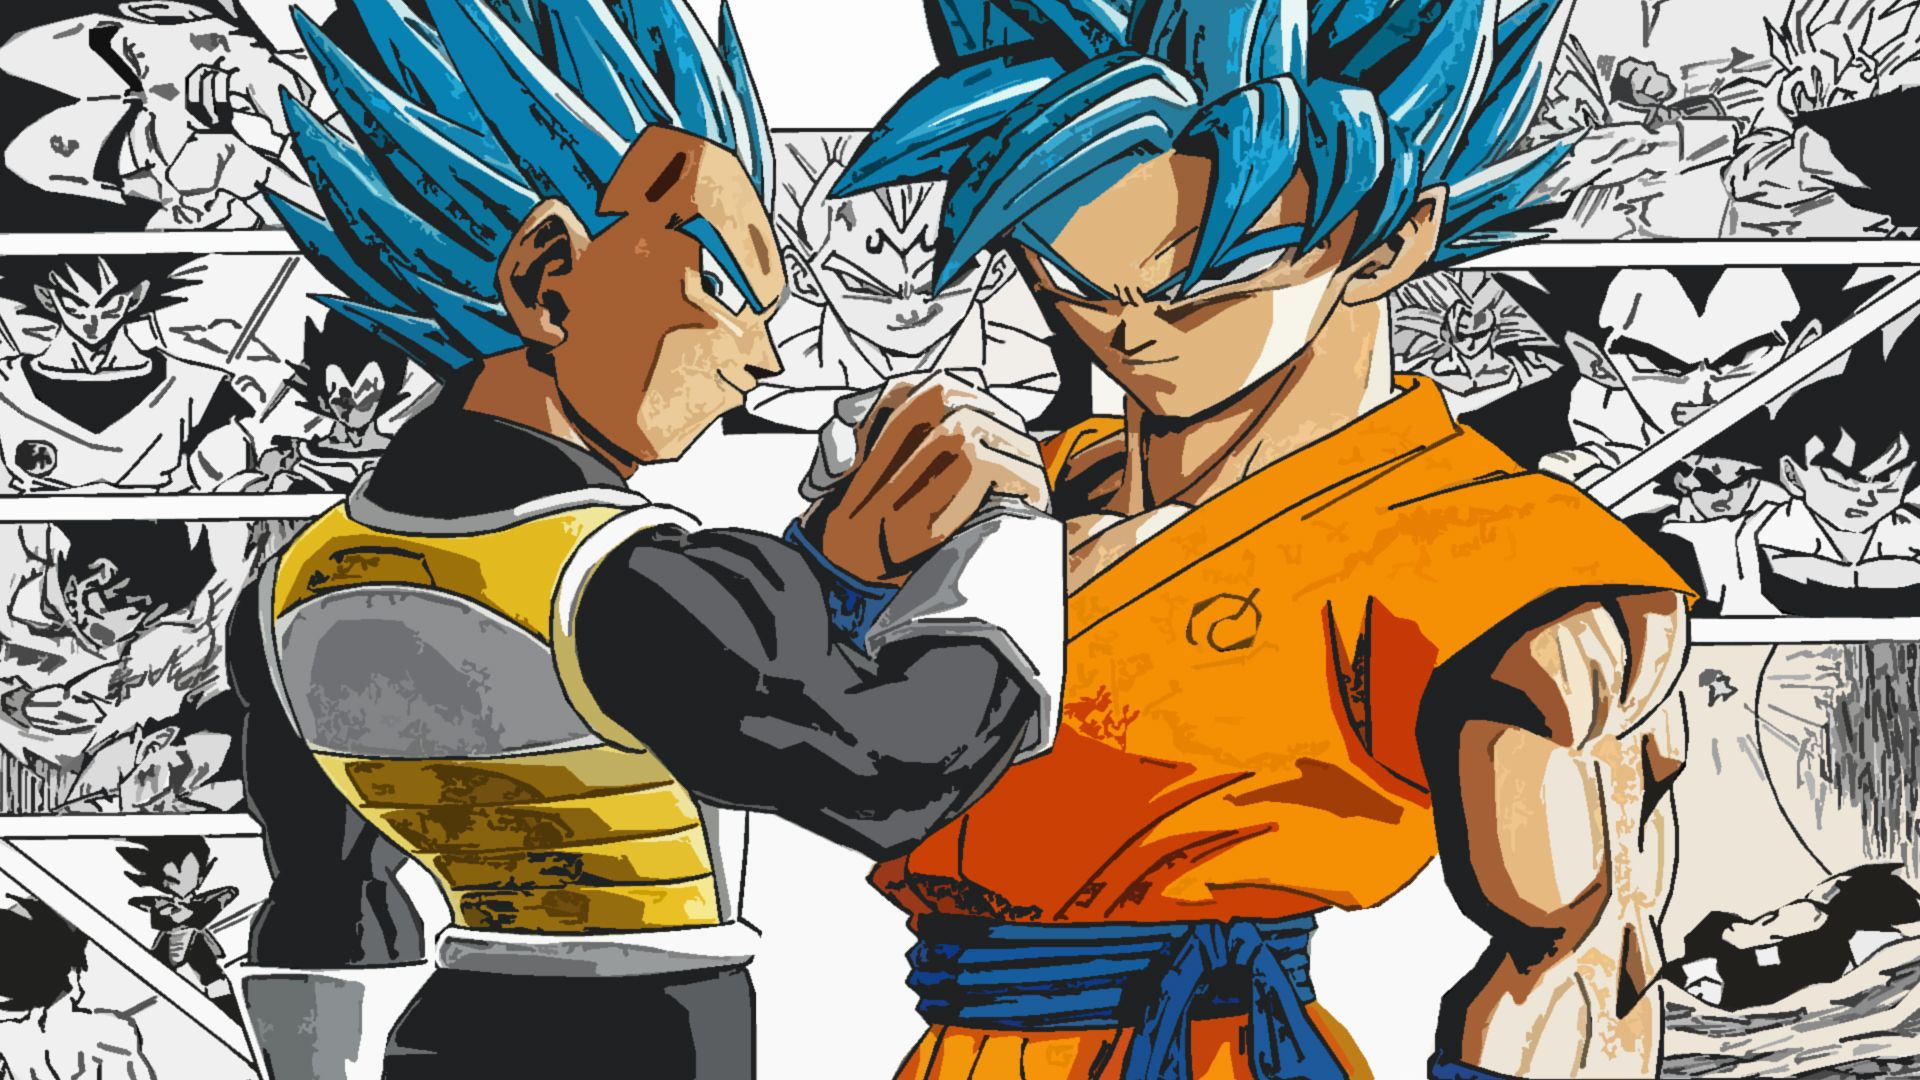 Super Saiyan Blue Goku and Vegeta [1920x1080] Need iPhone